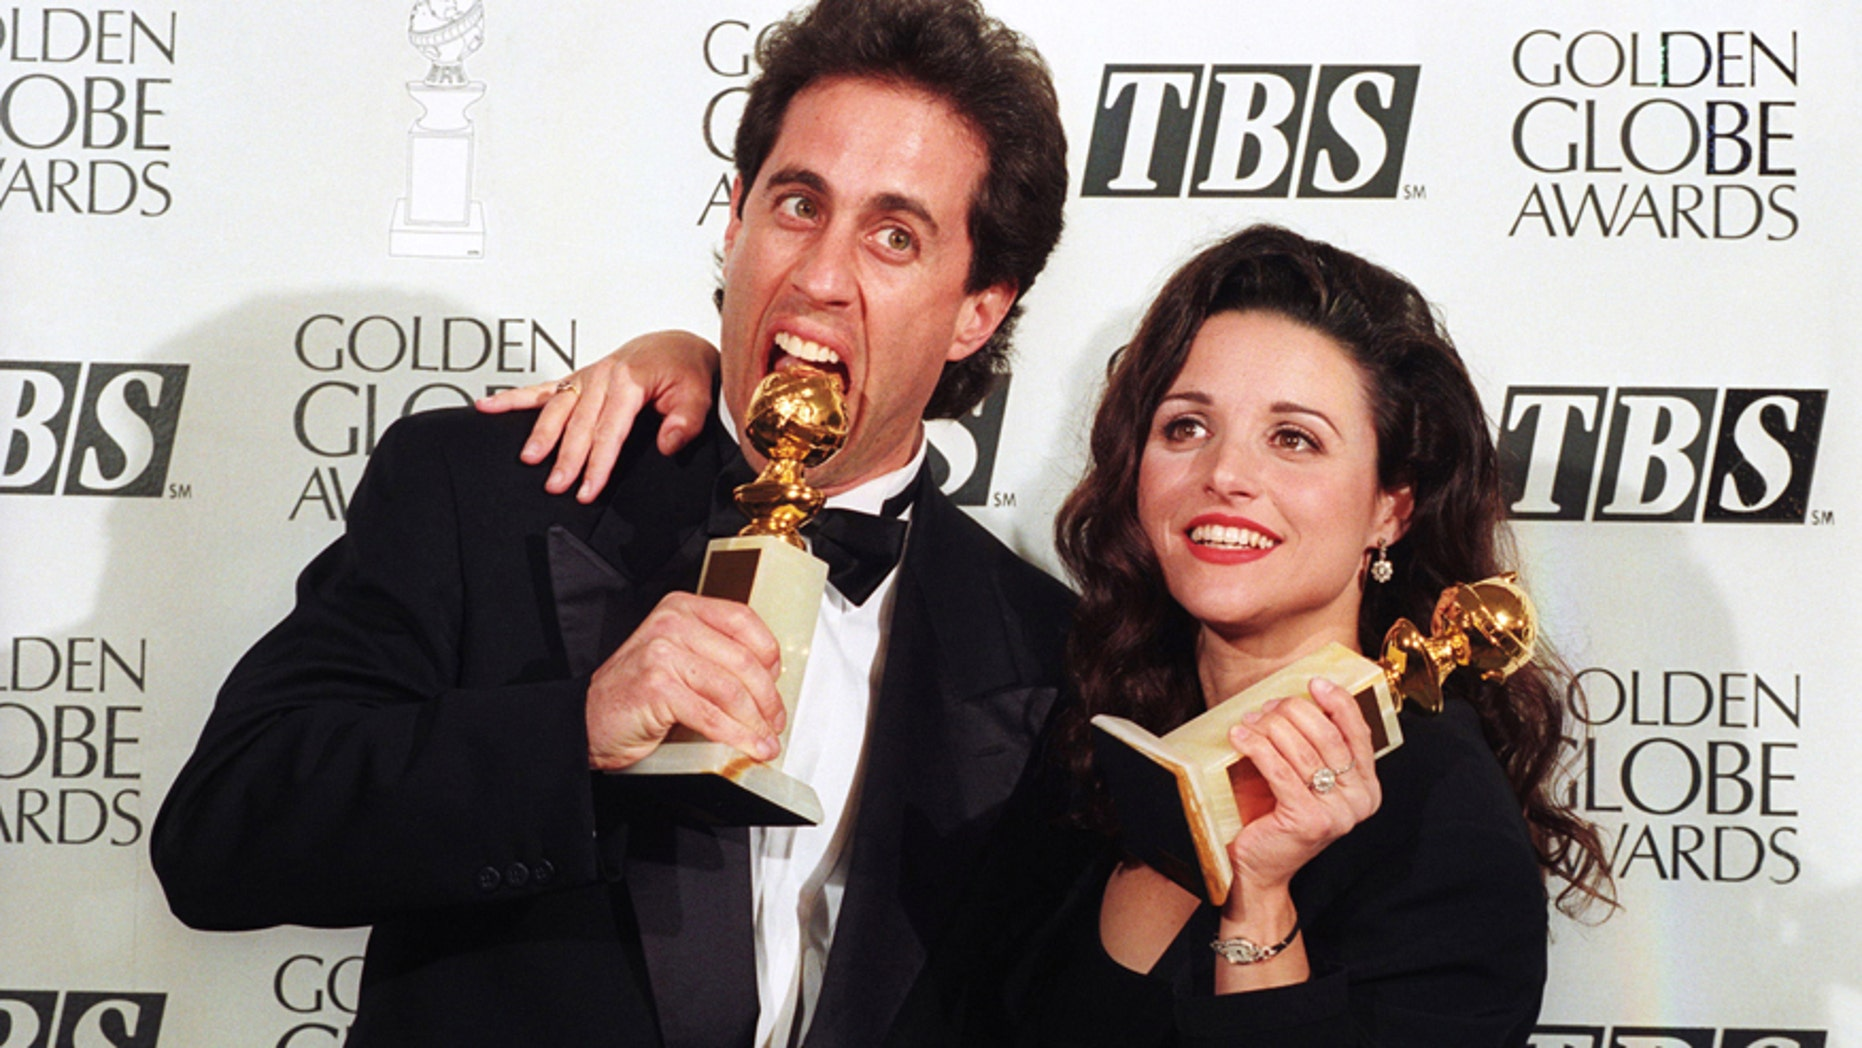 Jerry Seinfeld and Julia Louis-Dreyfus show their Golden Globe awards January 22, 1994.